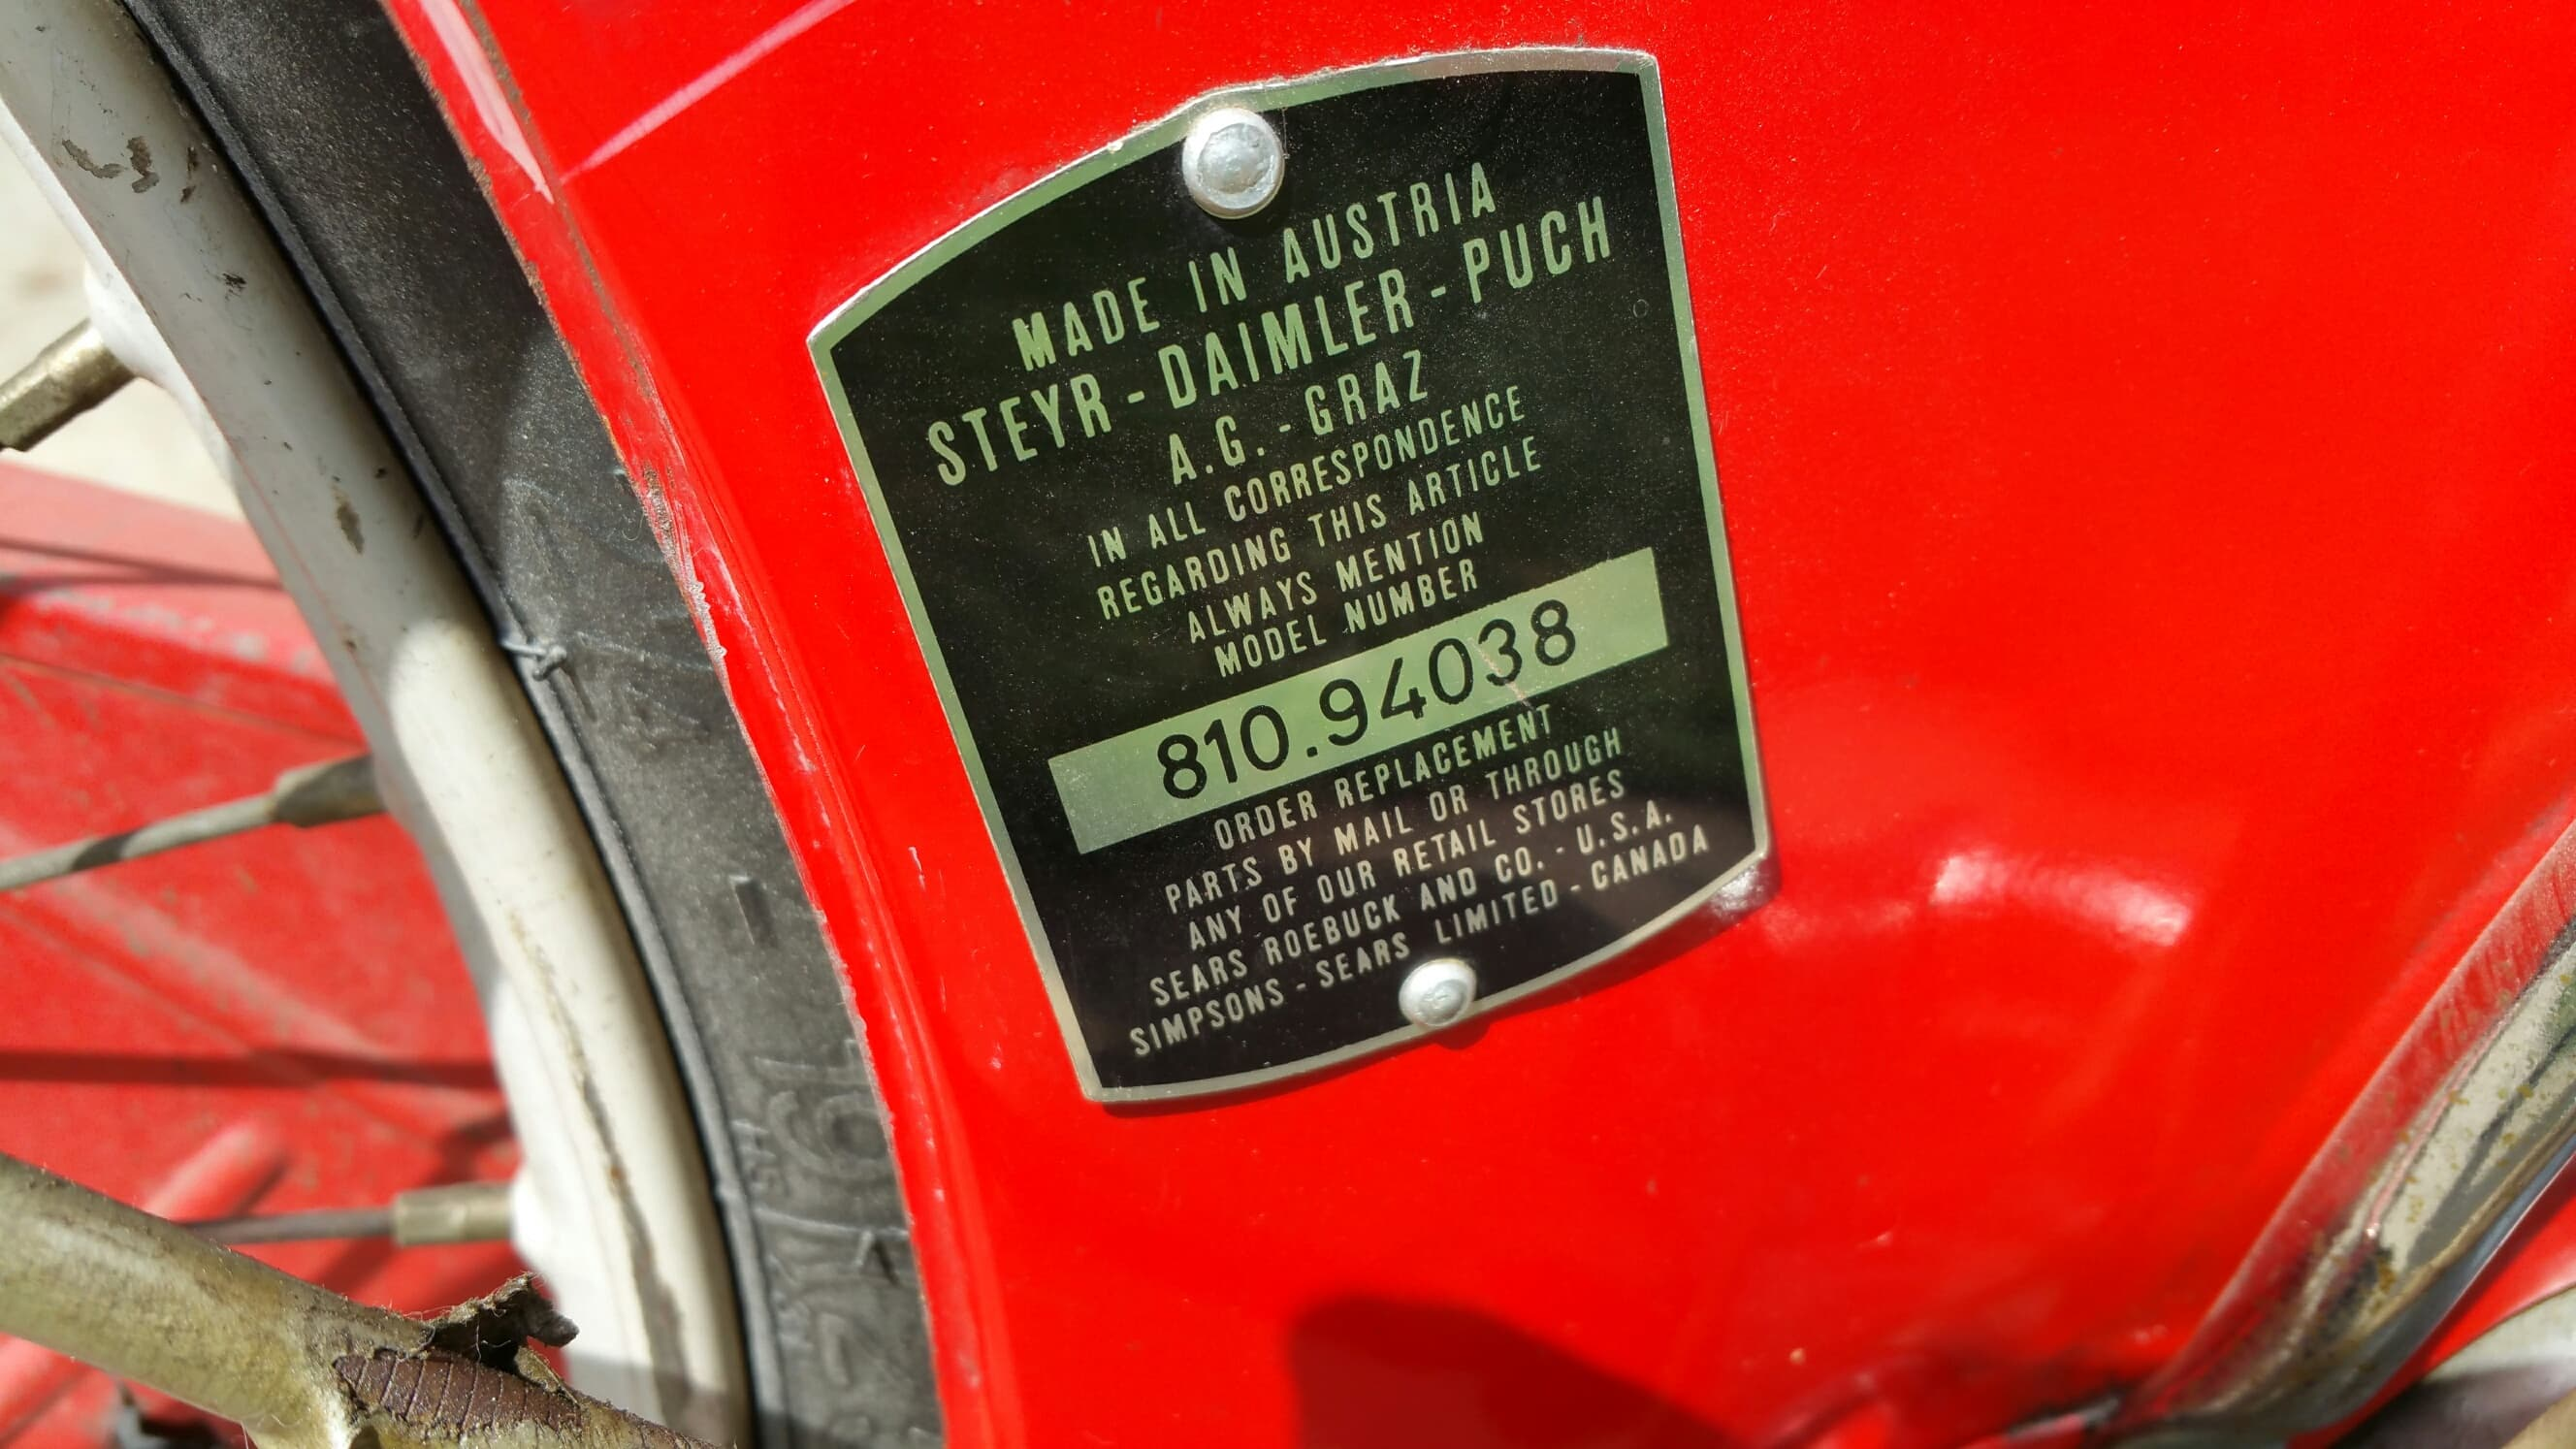 810.94038 Allstate Mo-Ped Puch